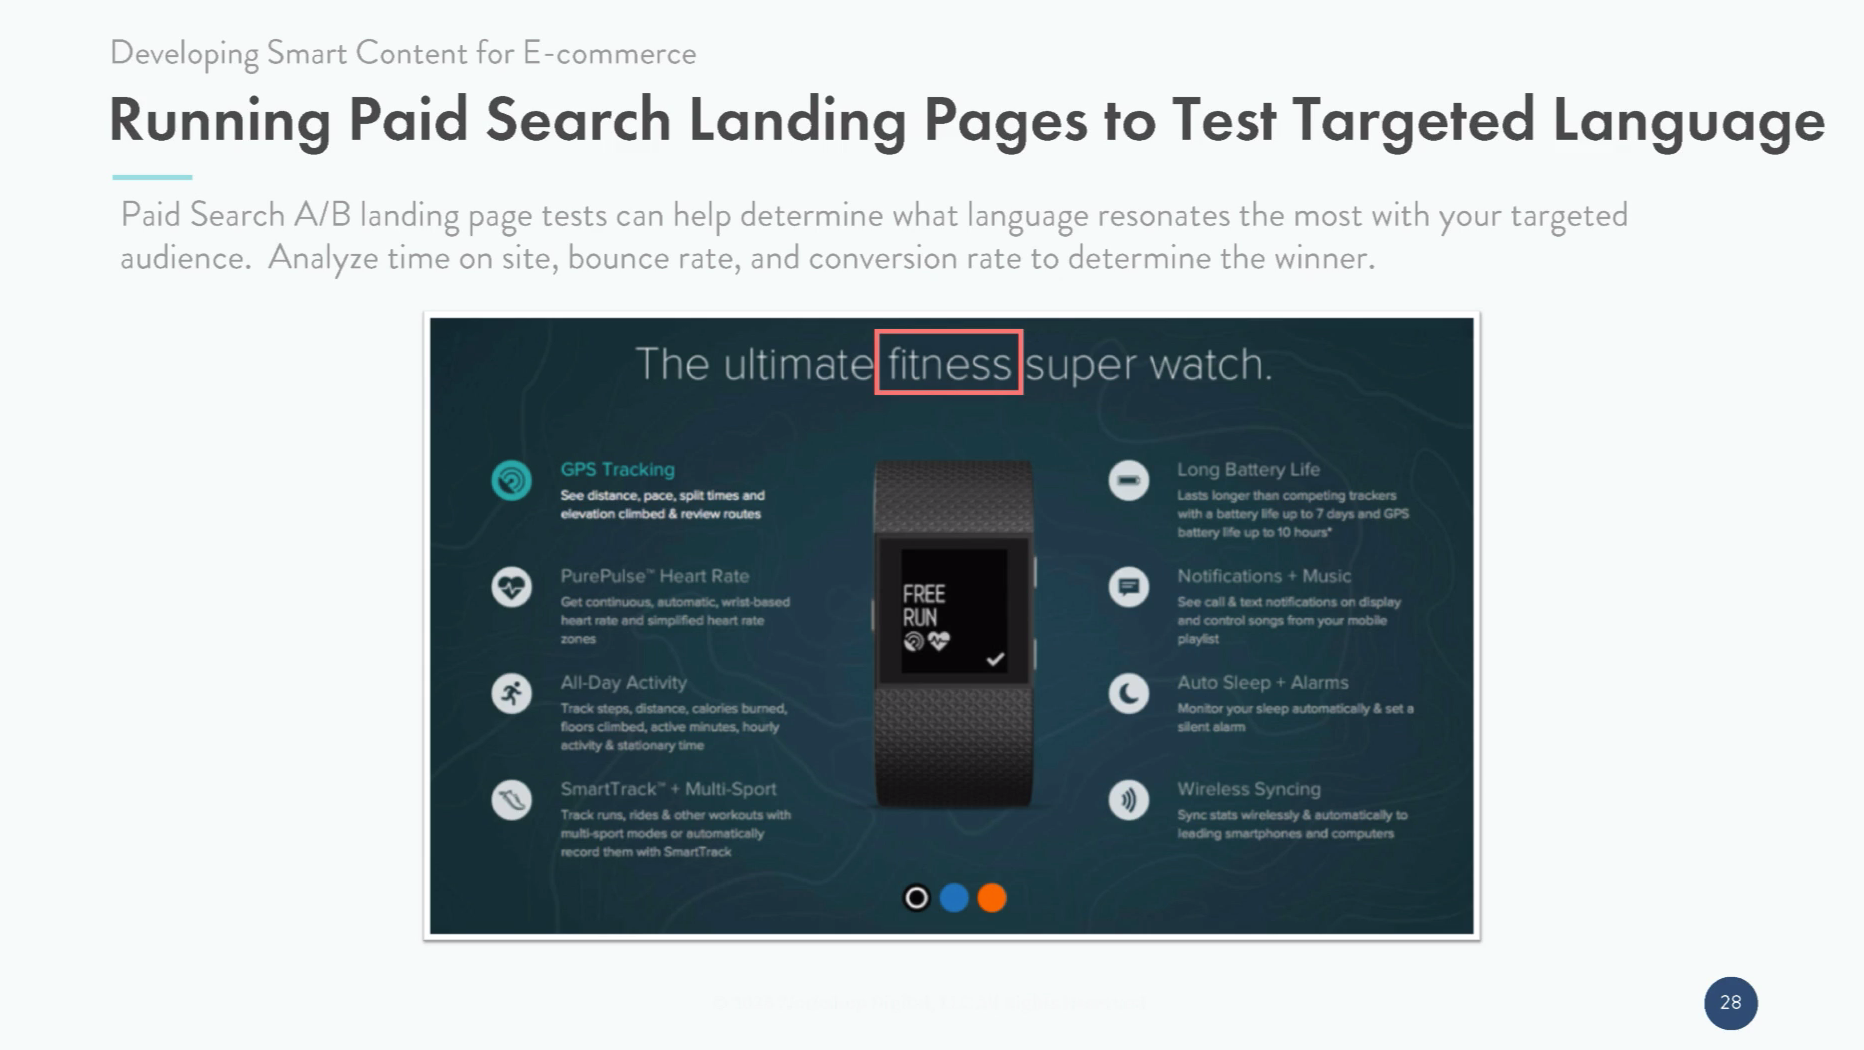 Running Paid Search Landing Pages to Test Targeted Language